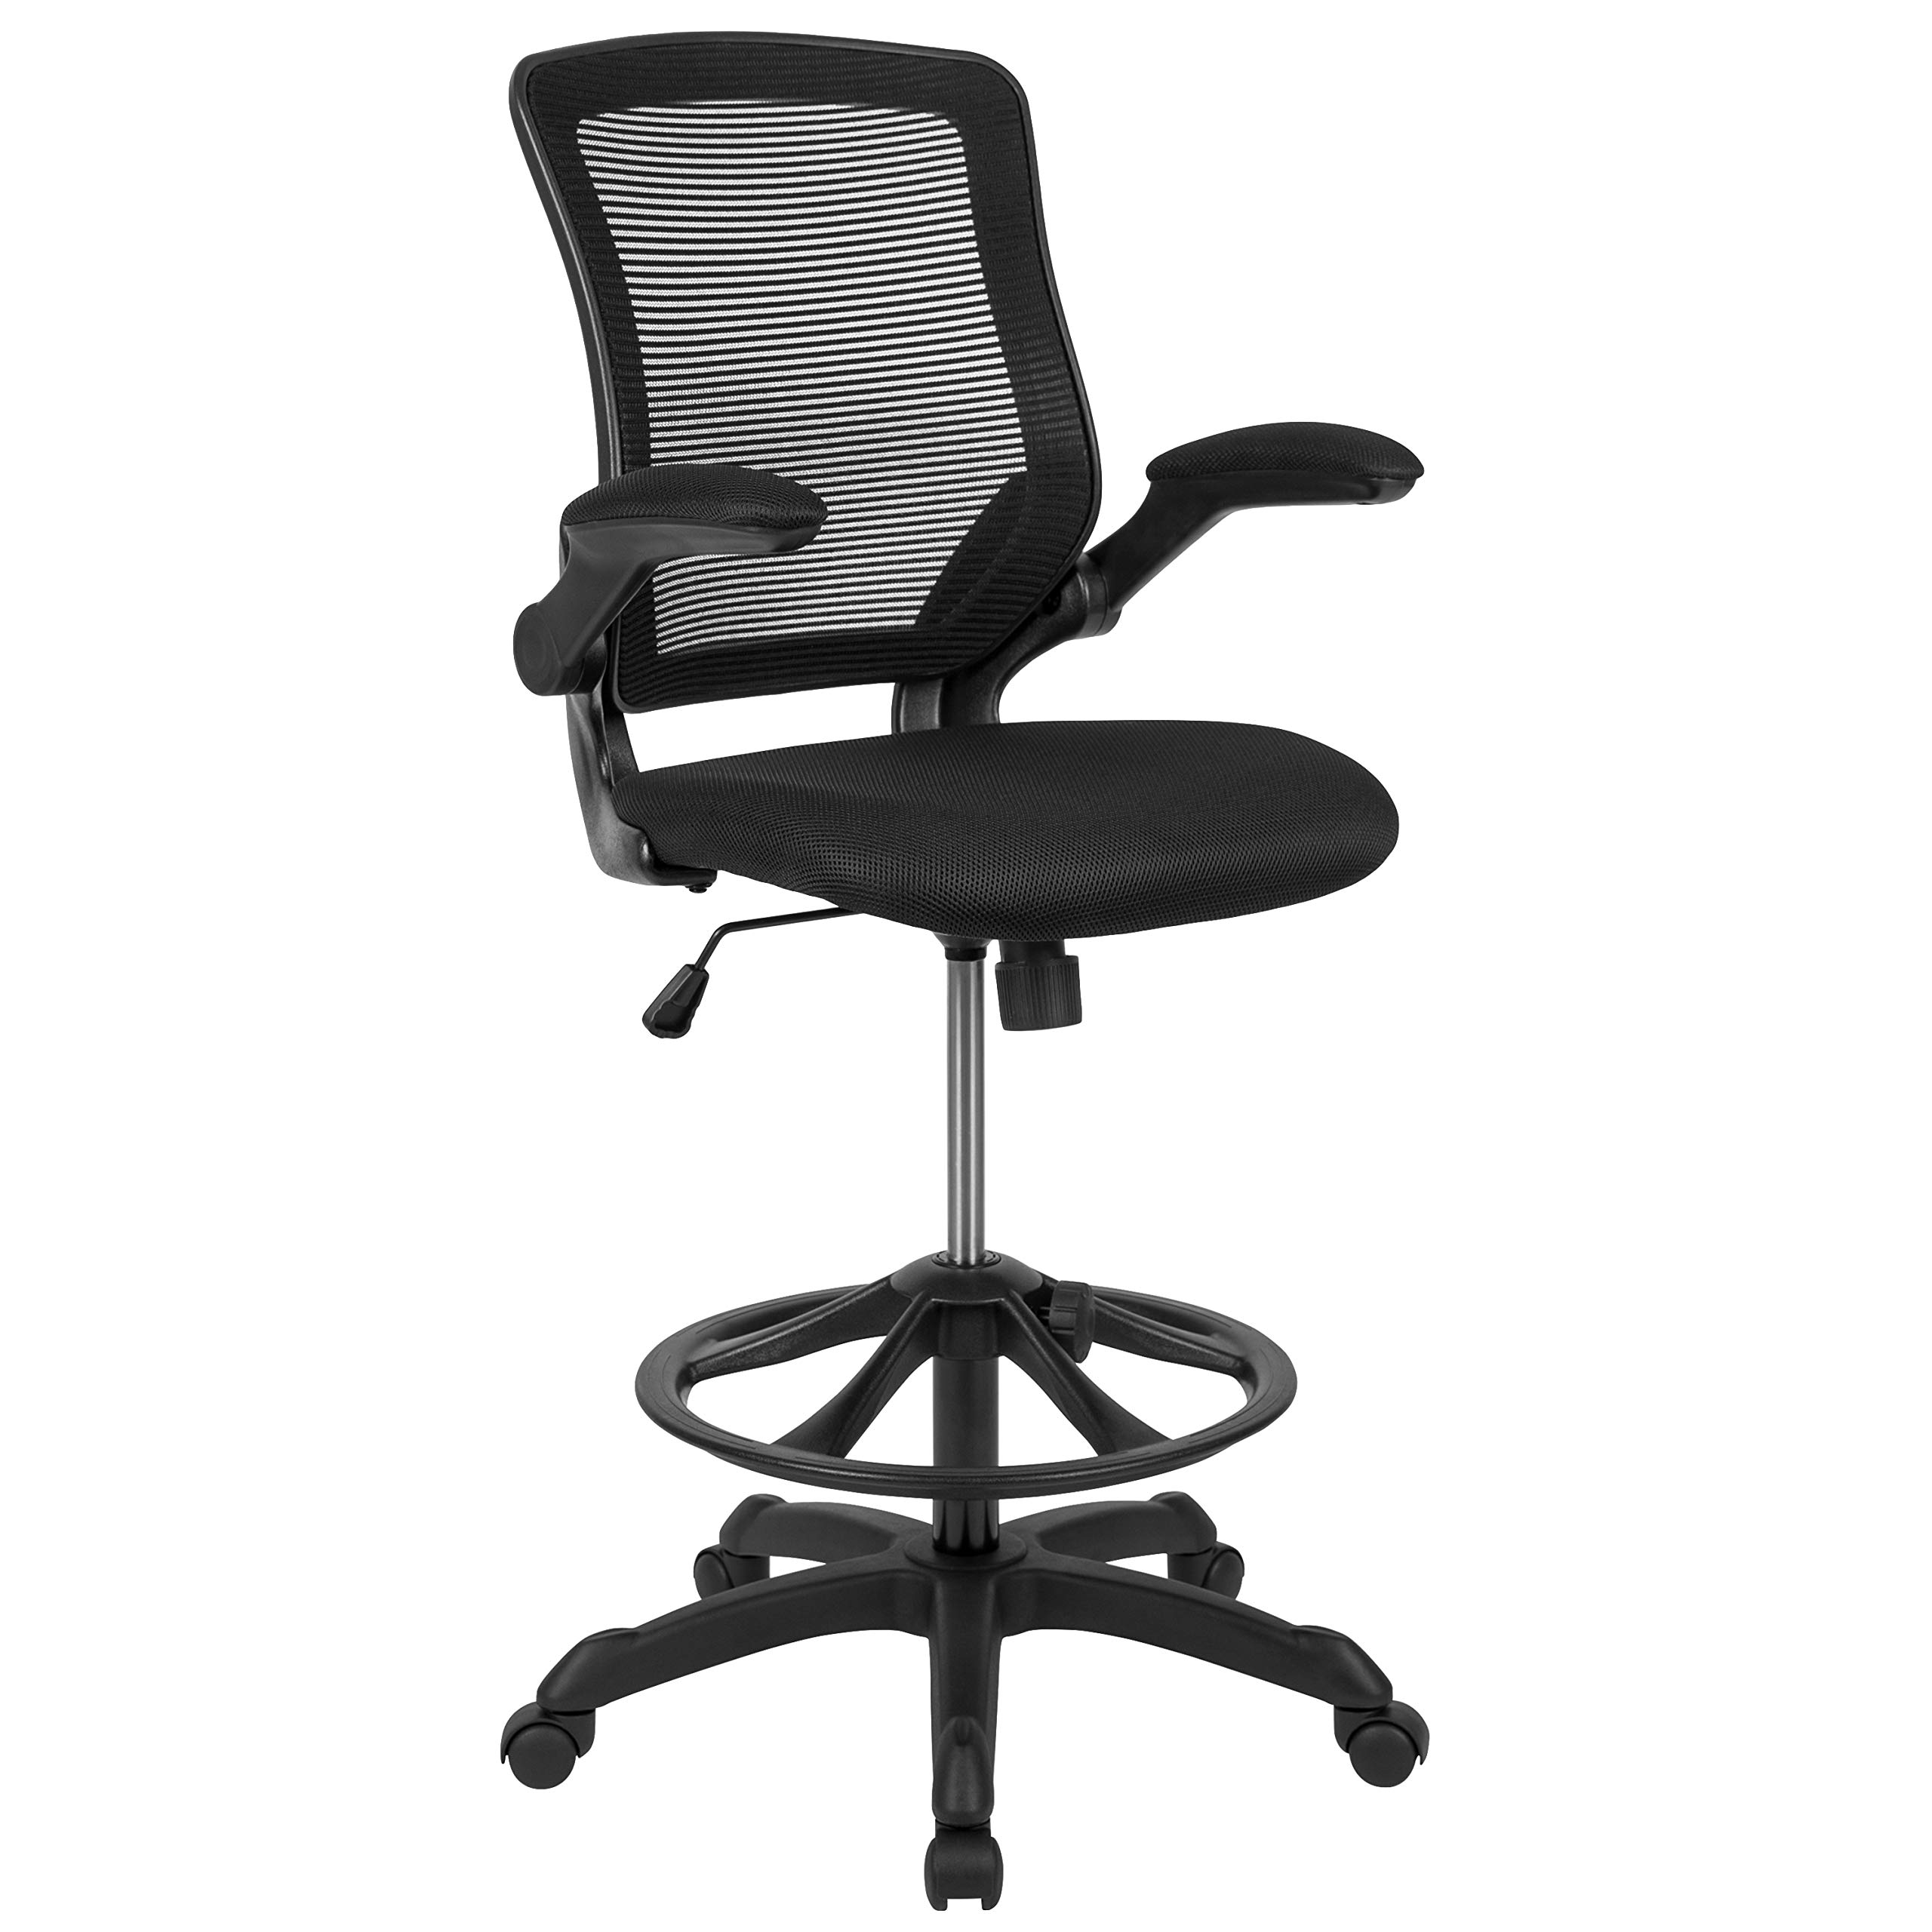 Flash Furniture Mid-Back Black Mesh Ergonomic Drafting Chair with Adjustable Foot Ring and Flip-Up Arms - by Flash Furniture